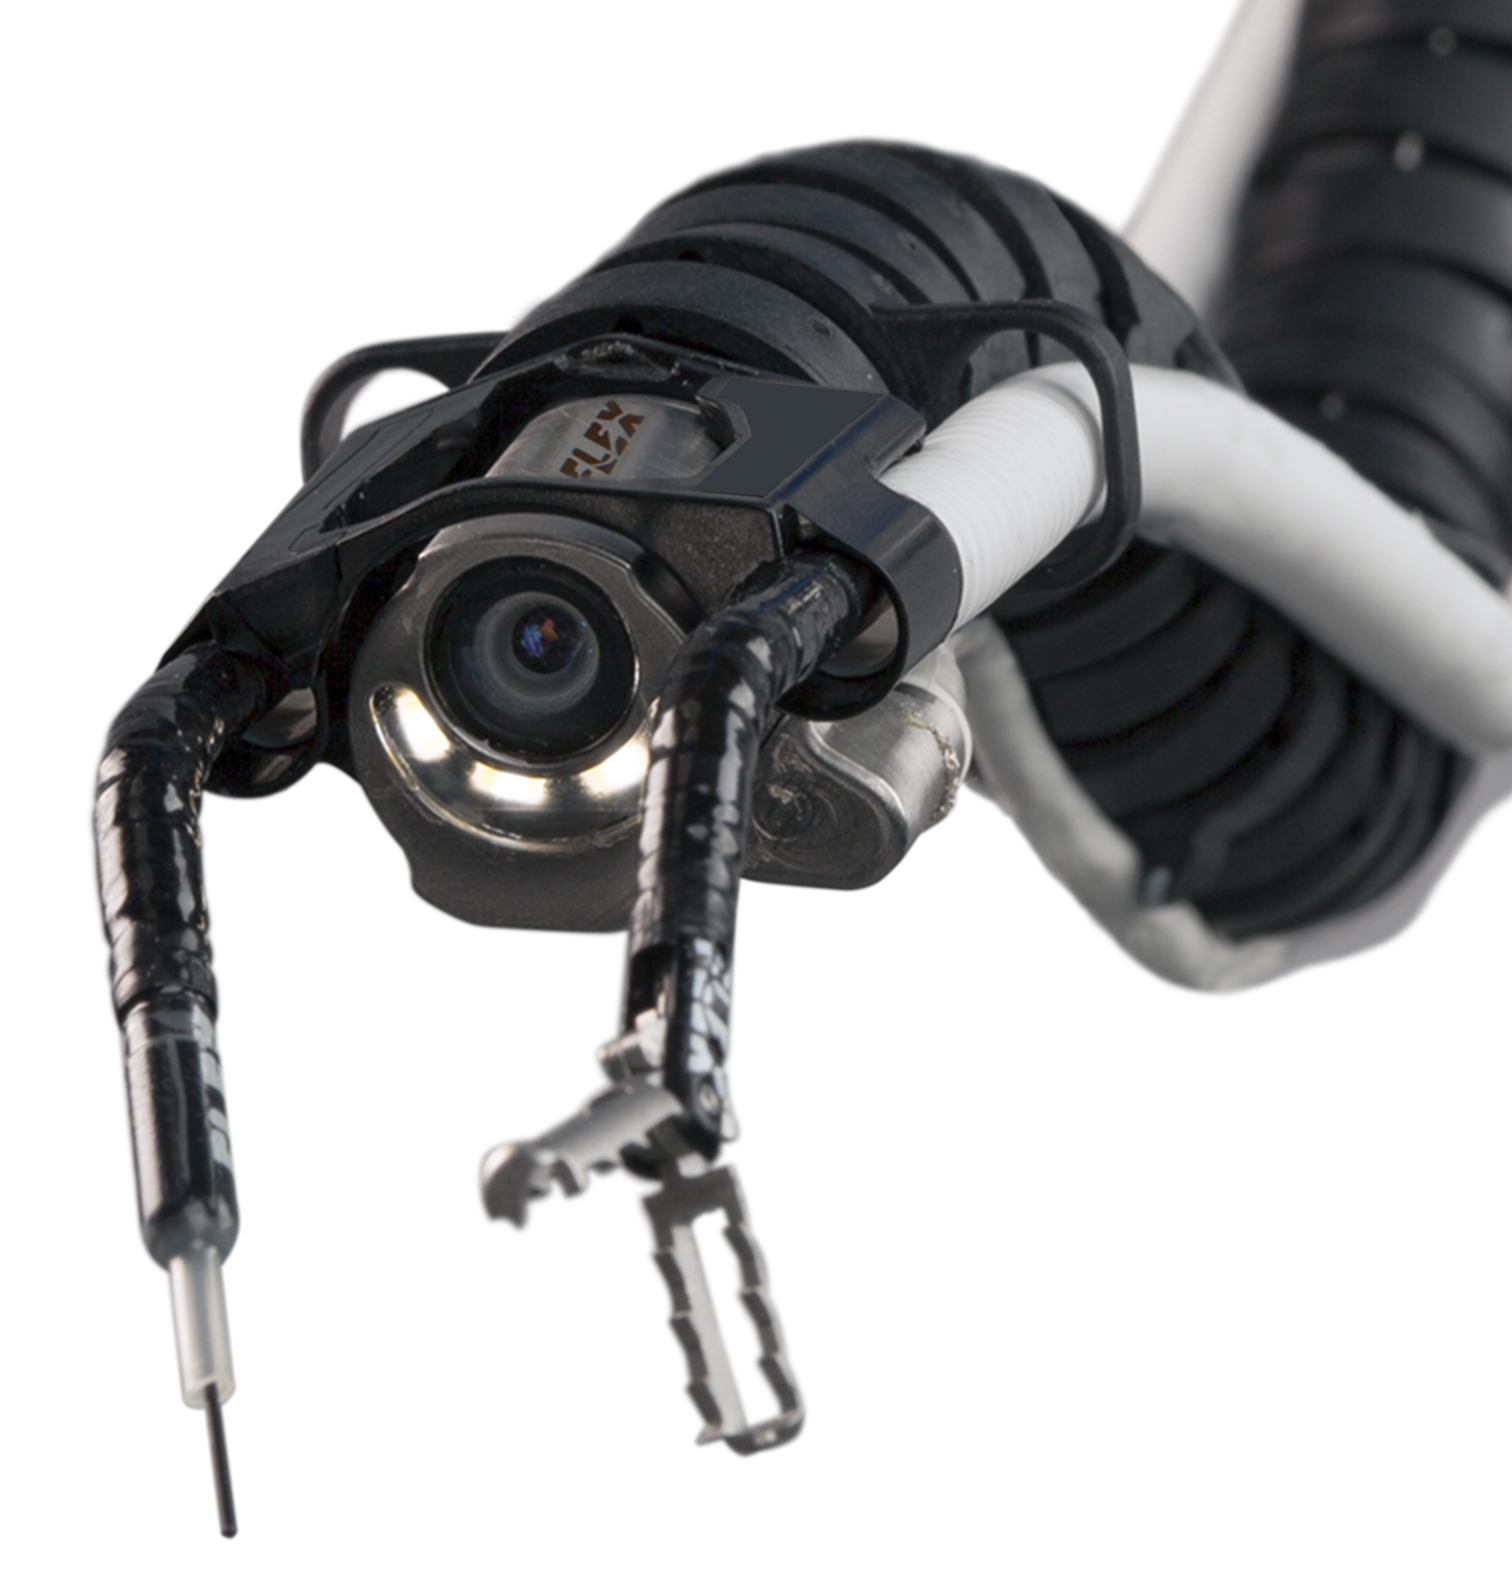 The Flex® Robotic System allows surgeons to navigate complex anatomy and operate in hard-to-reach anatomical locations. (Photo: Business Wire)